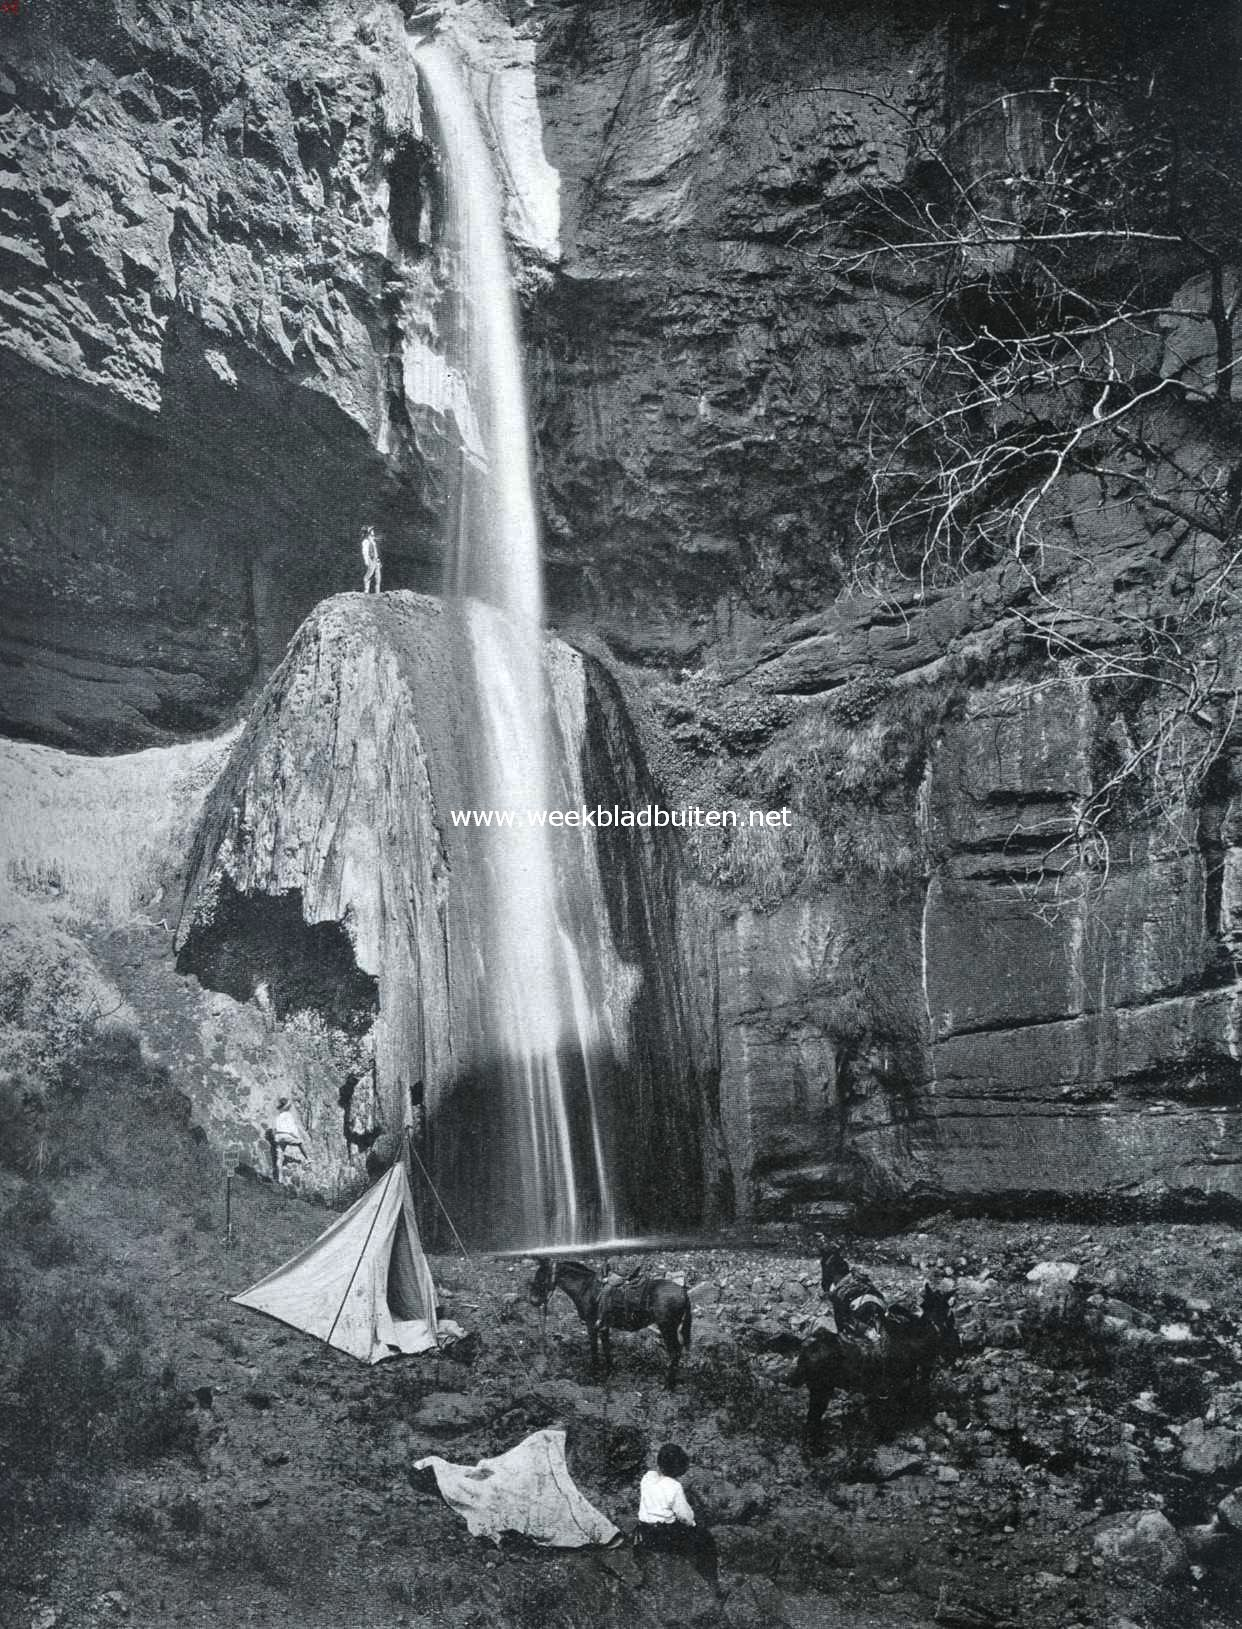 De altaar-waterval in het Grand Canyon National Park (V.S. v. N.A.)